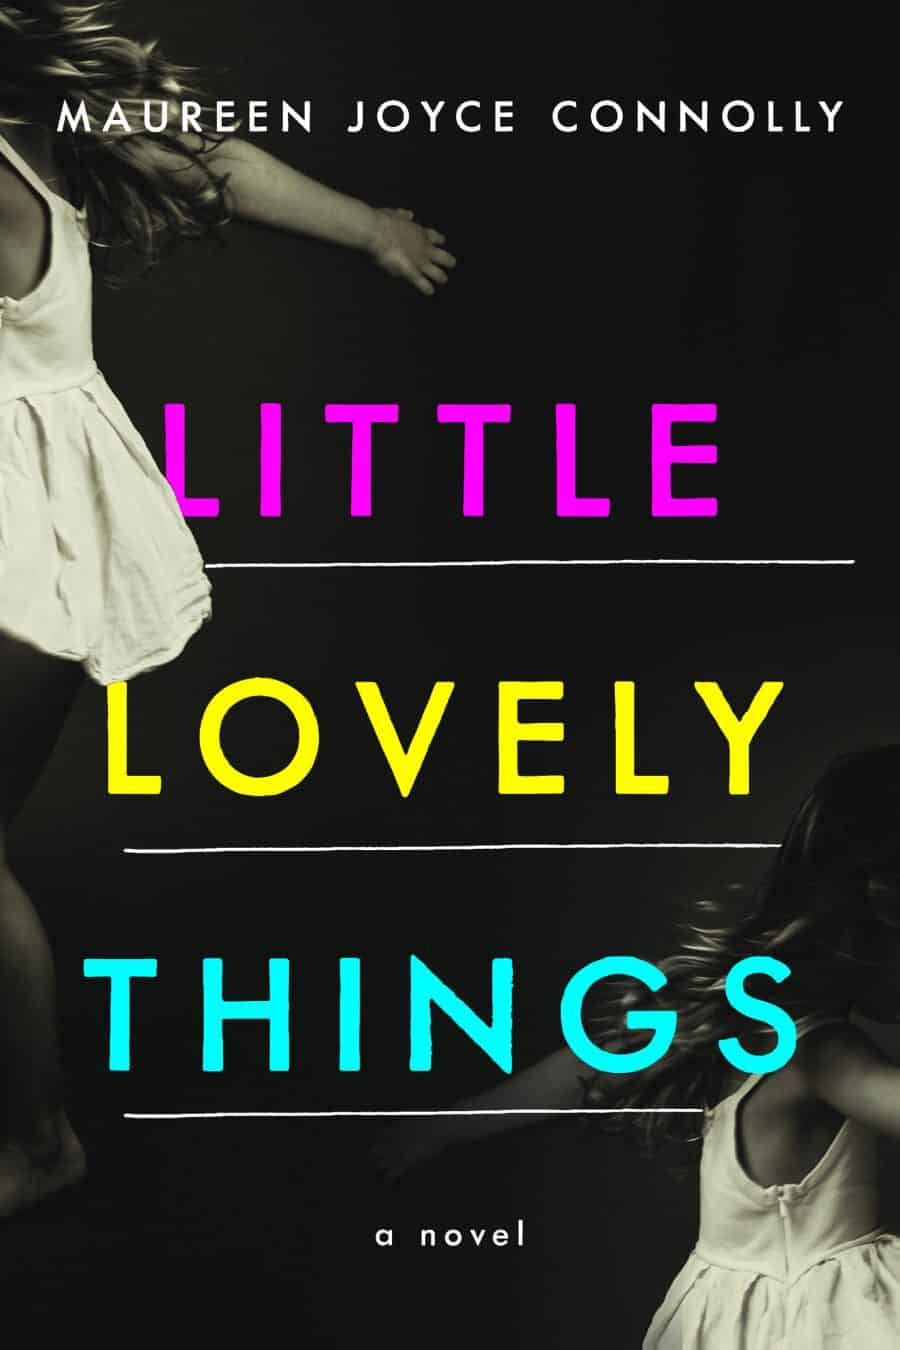 Maureen_Joyce_Connolly Little Lovely Things